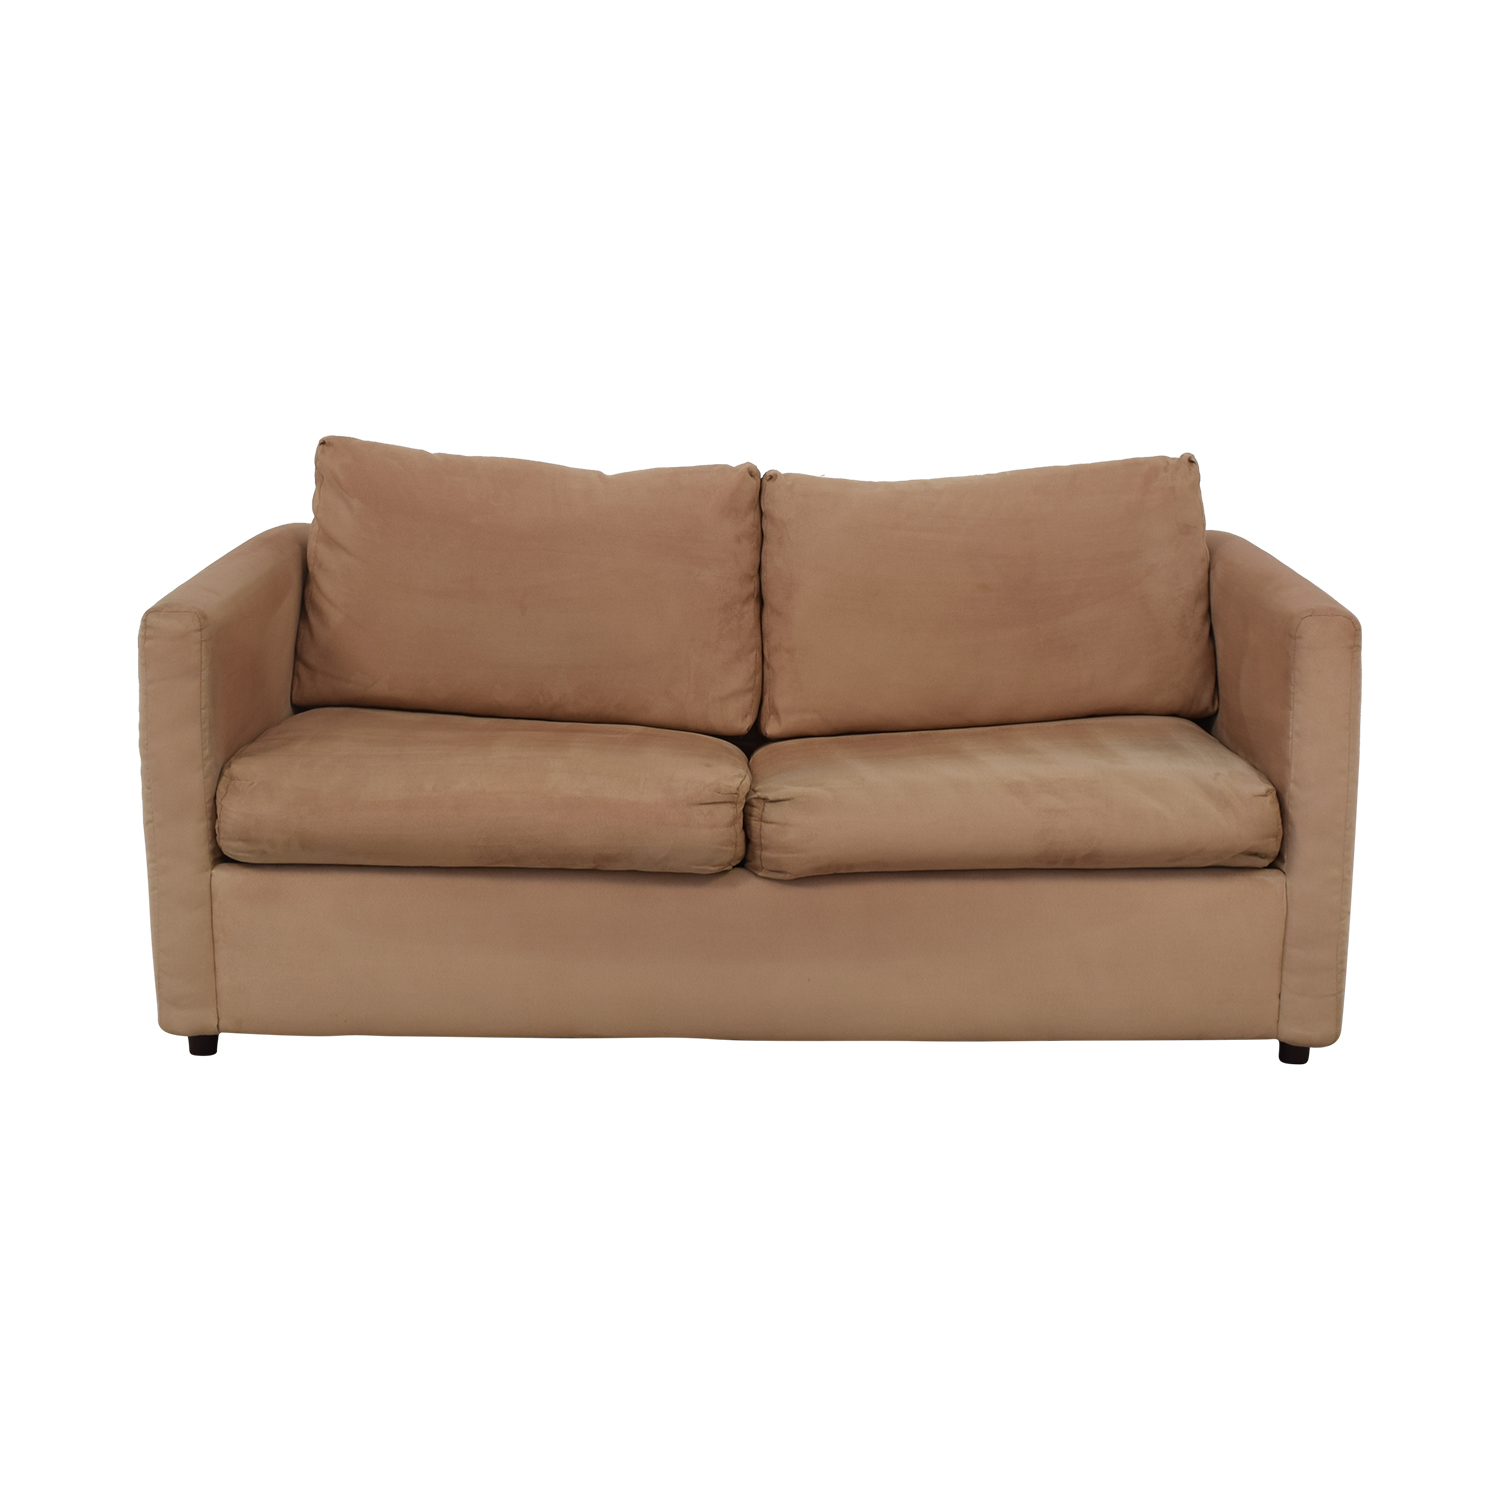 Rowe Furniture Rowe Furniture Two Cushion Sleeper Sofa nyc